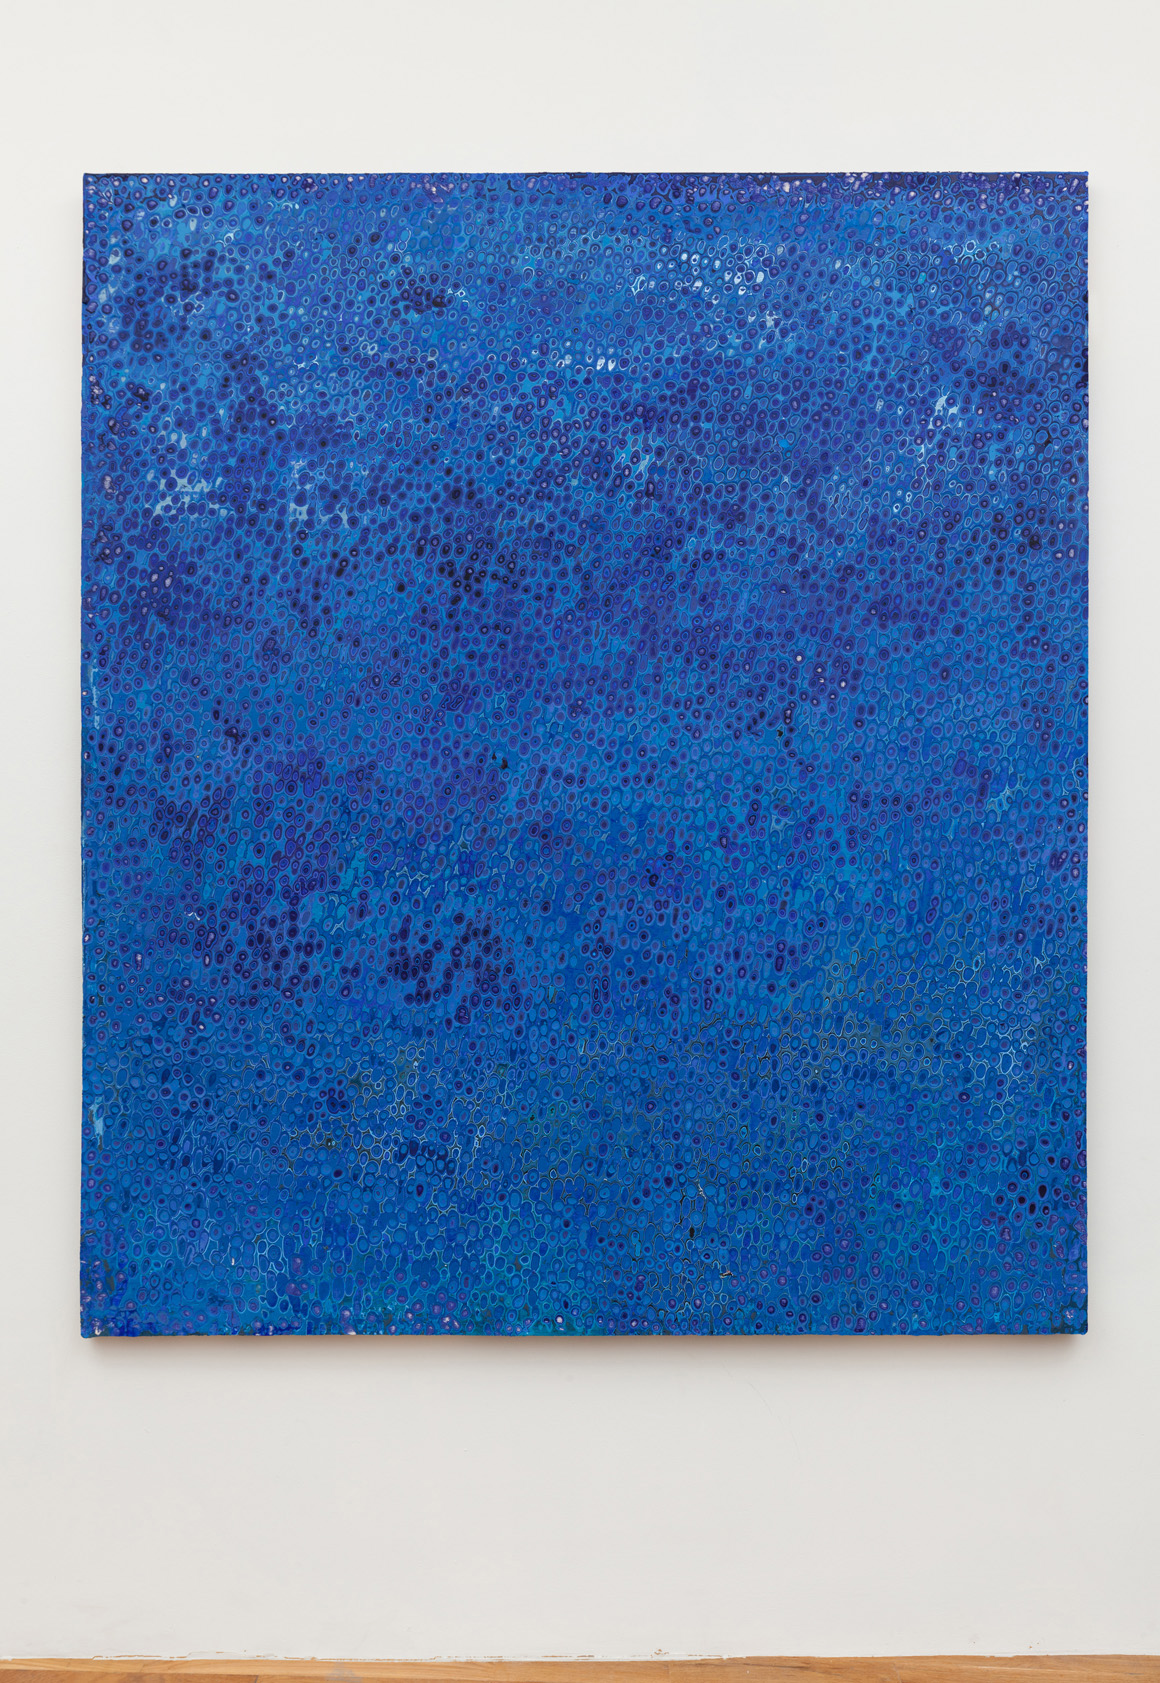 "<p><span class=""name"">Andrew Jensdotter</span><br><em>Blue 92</em><span class='media'>Carved latex on canvas</span>80 x 68 in (203.2 x 172.7 cm)<br>2018<br><a class='inquire' href='mailto:info@gildargallery.com?subject=Artwork Inquiry AJEN0047&body=I am interested in finding out more about Blue 92 by Andrew Jensdotter'>Inquire</a></p>"